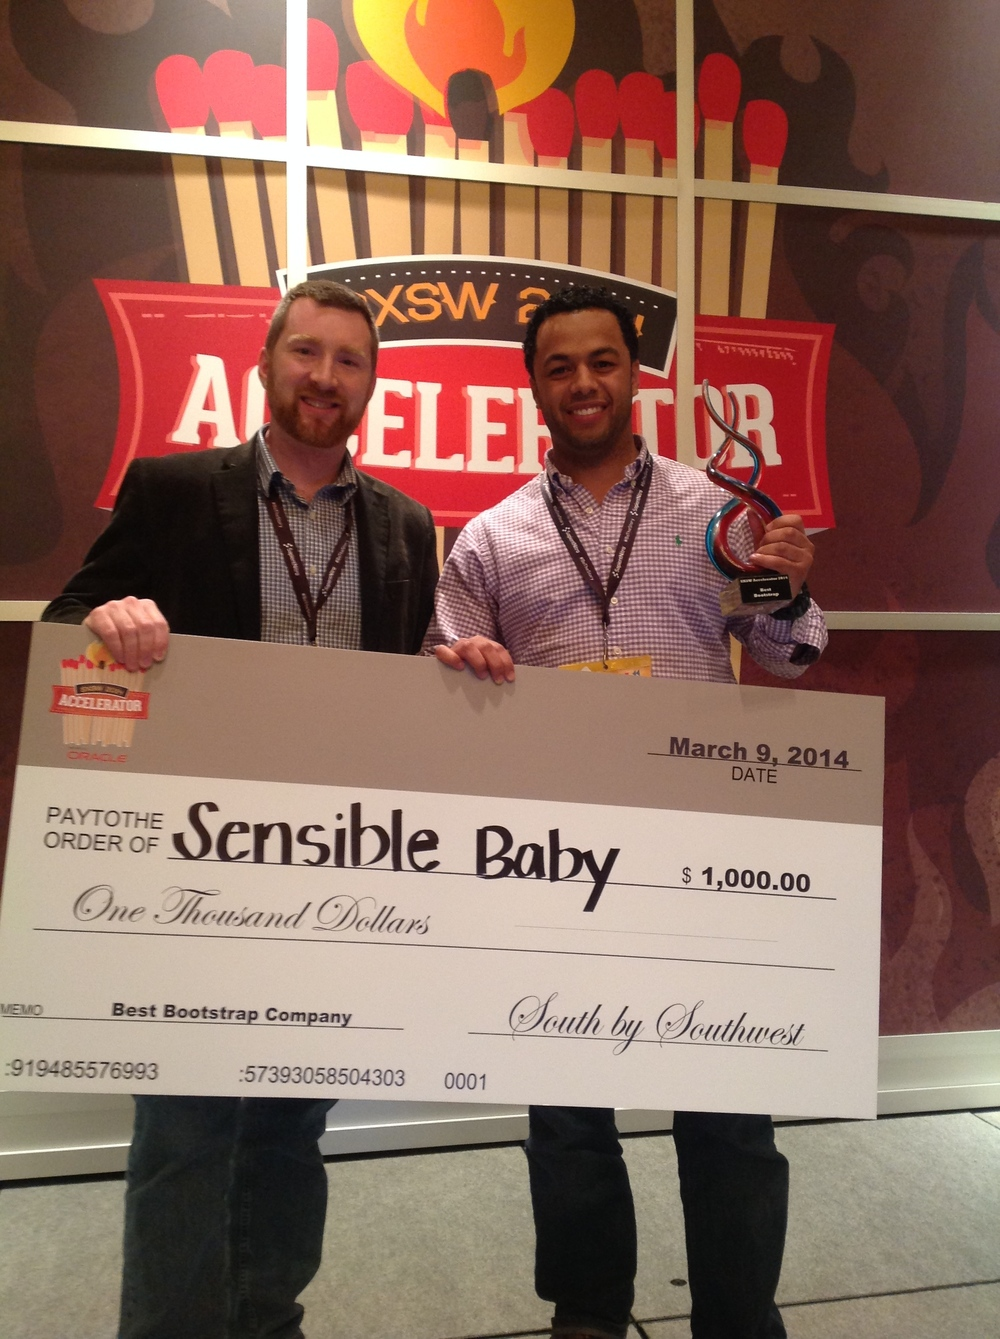 """""""Best Bootstrap Company"""" winner at the 2014 SXSW Accelerator in Austin, TX"""